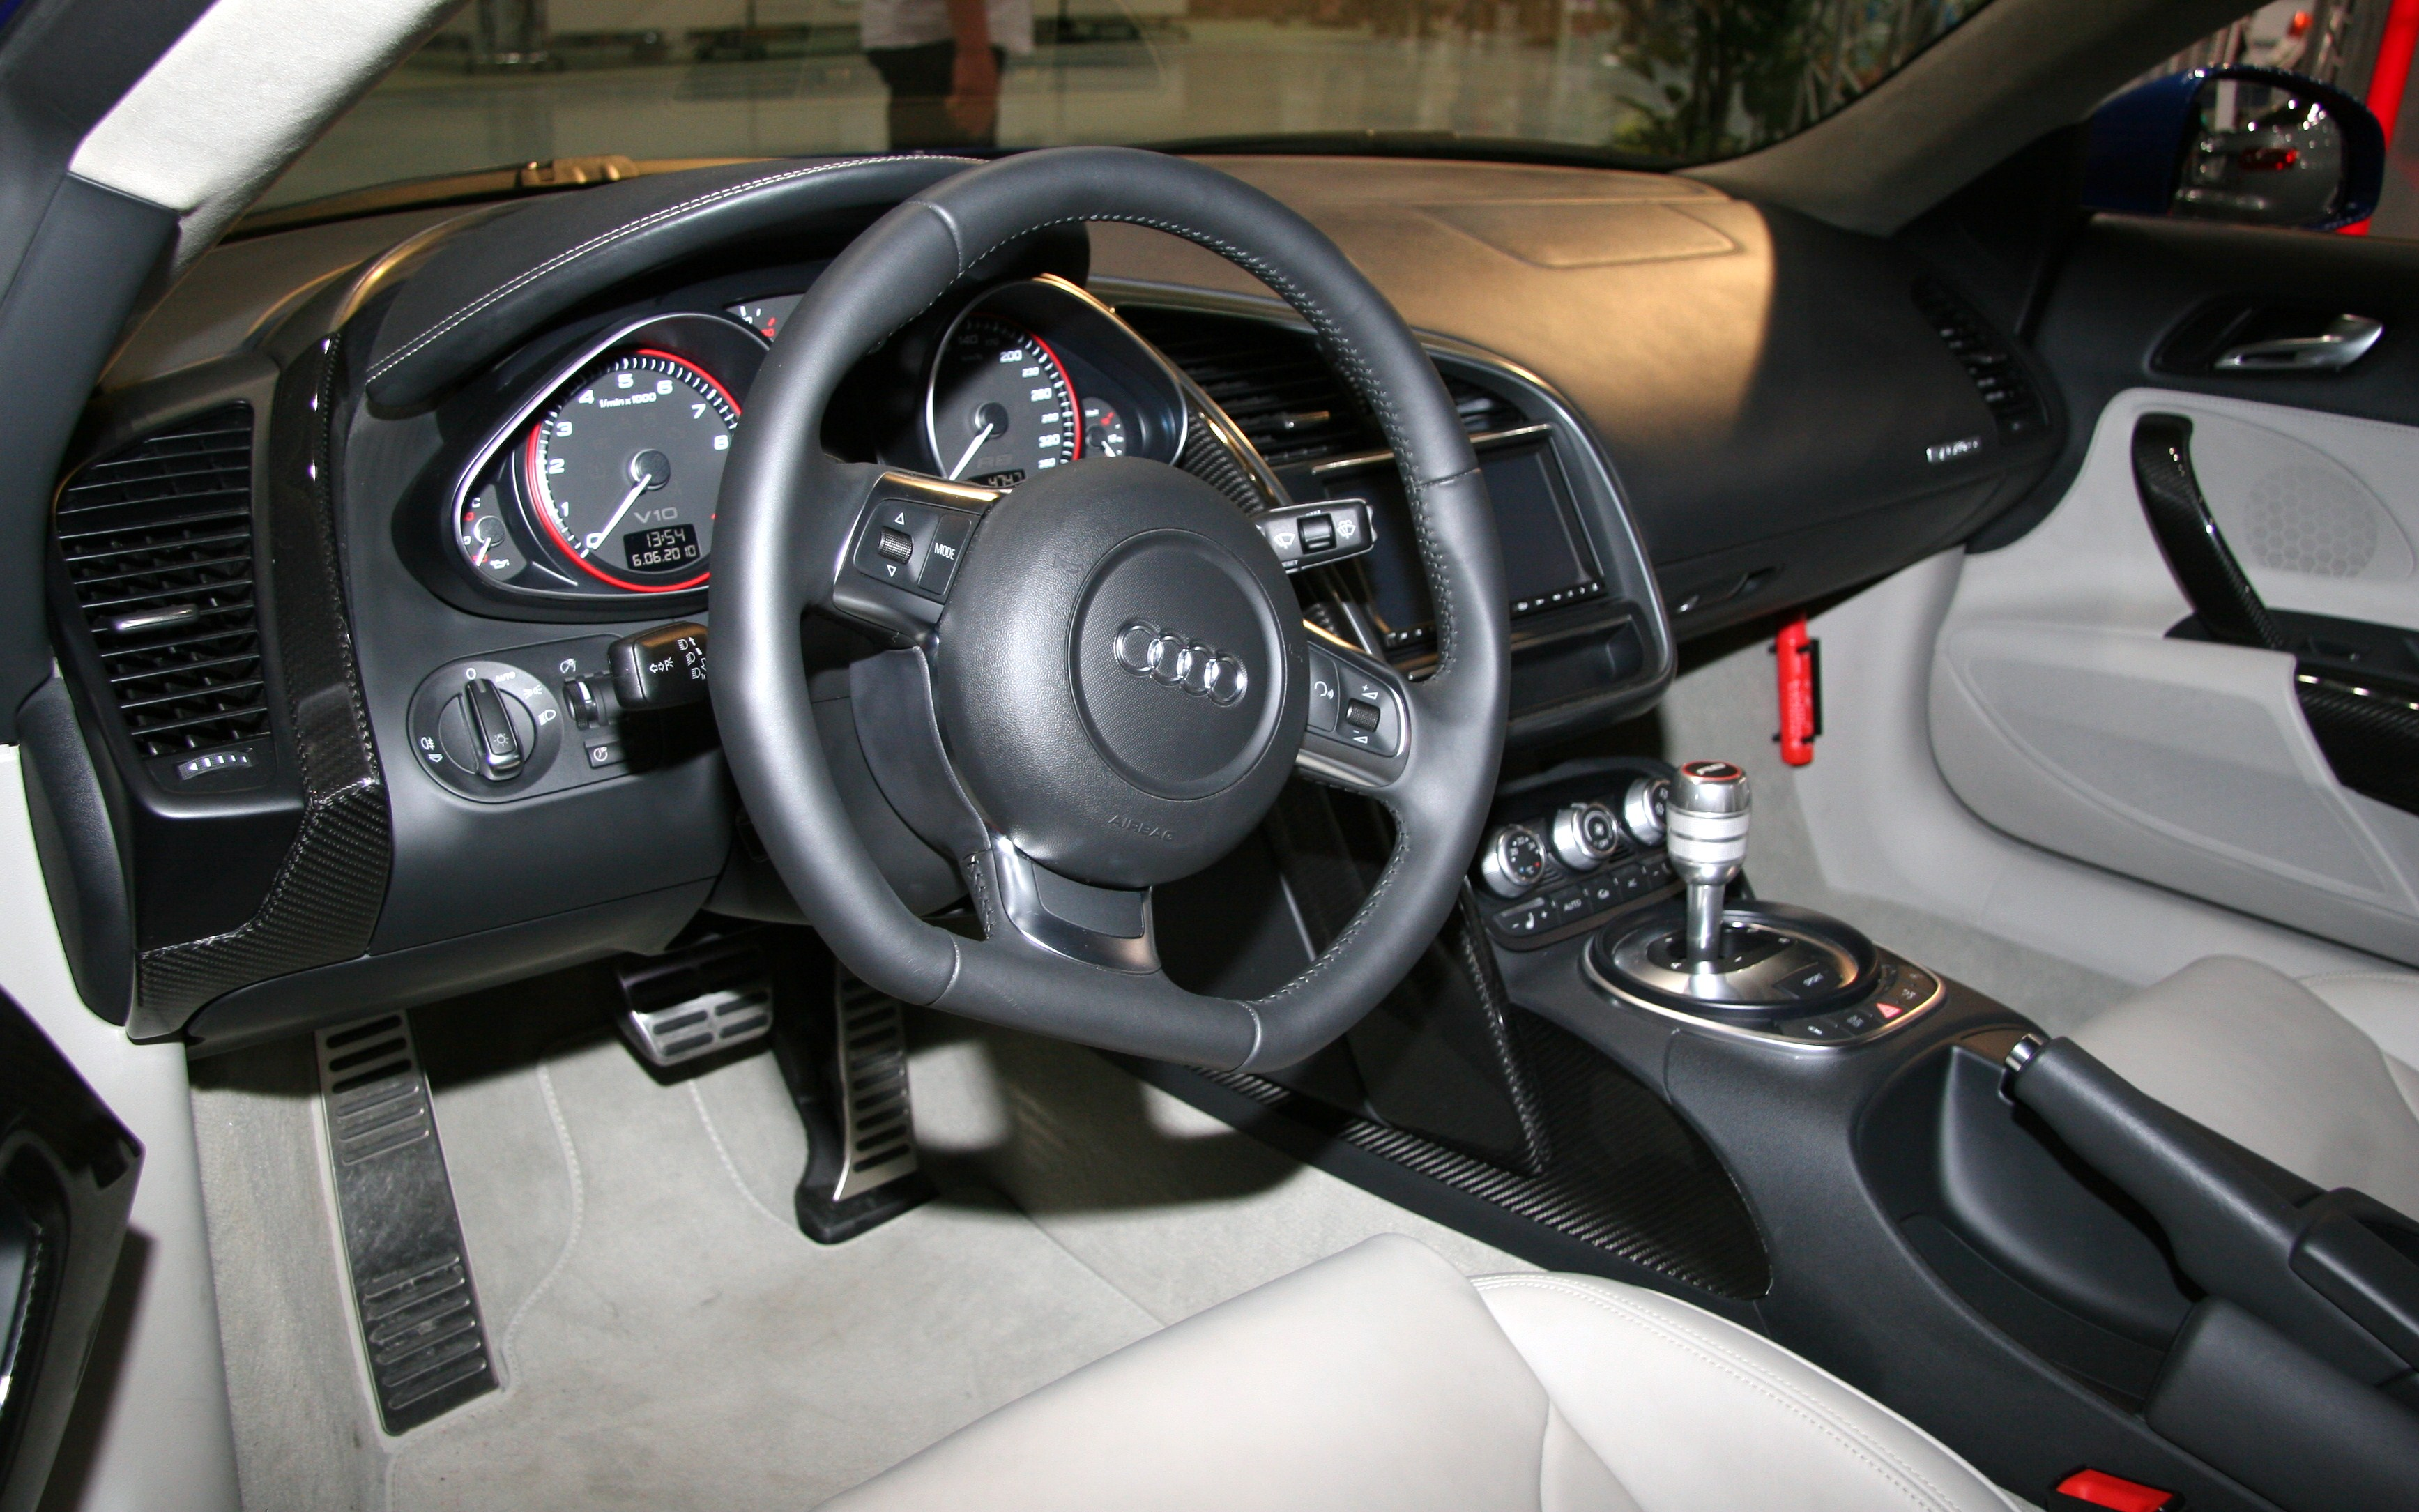 File:Audi R8 V10 interior.jpg - Wikimedia Commons